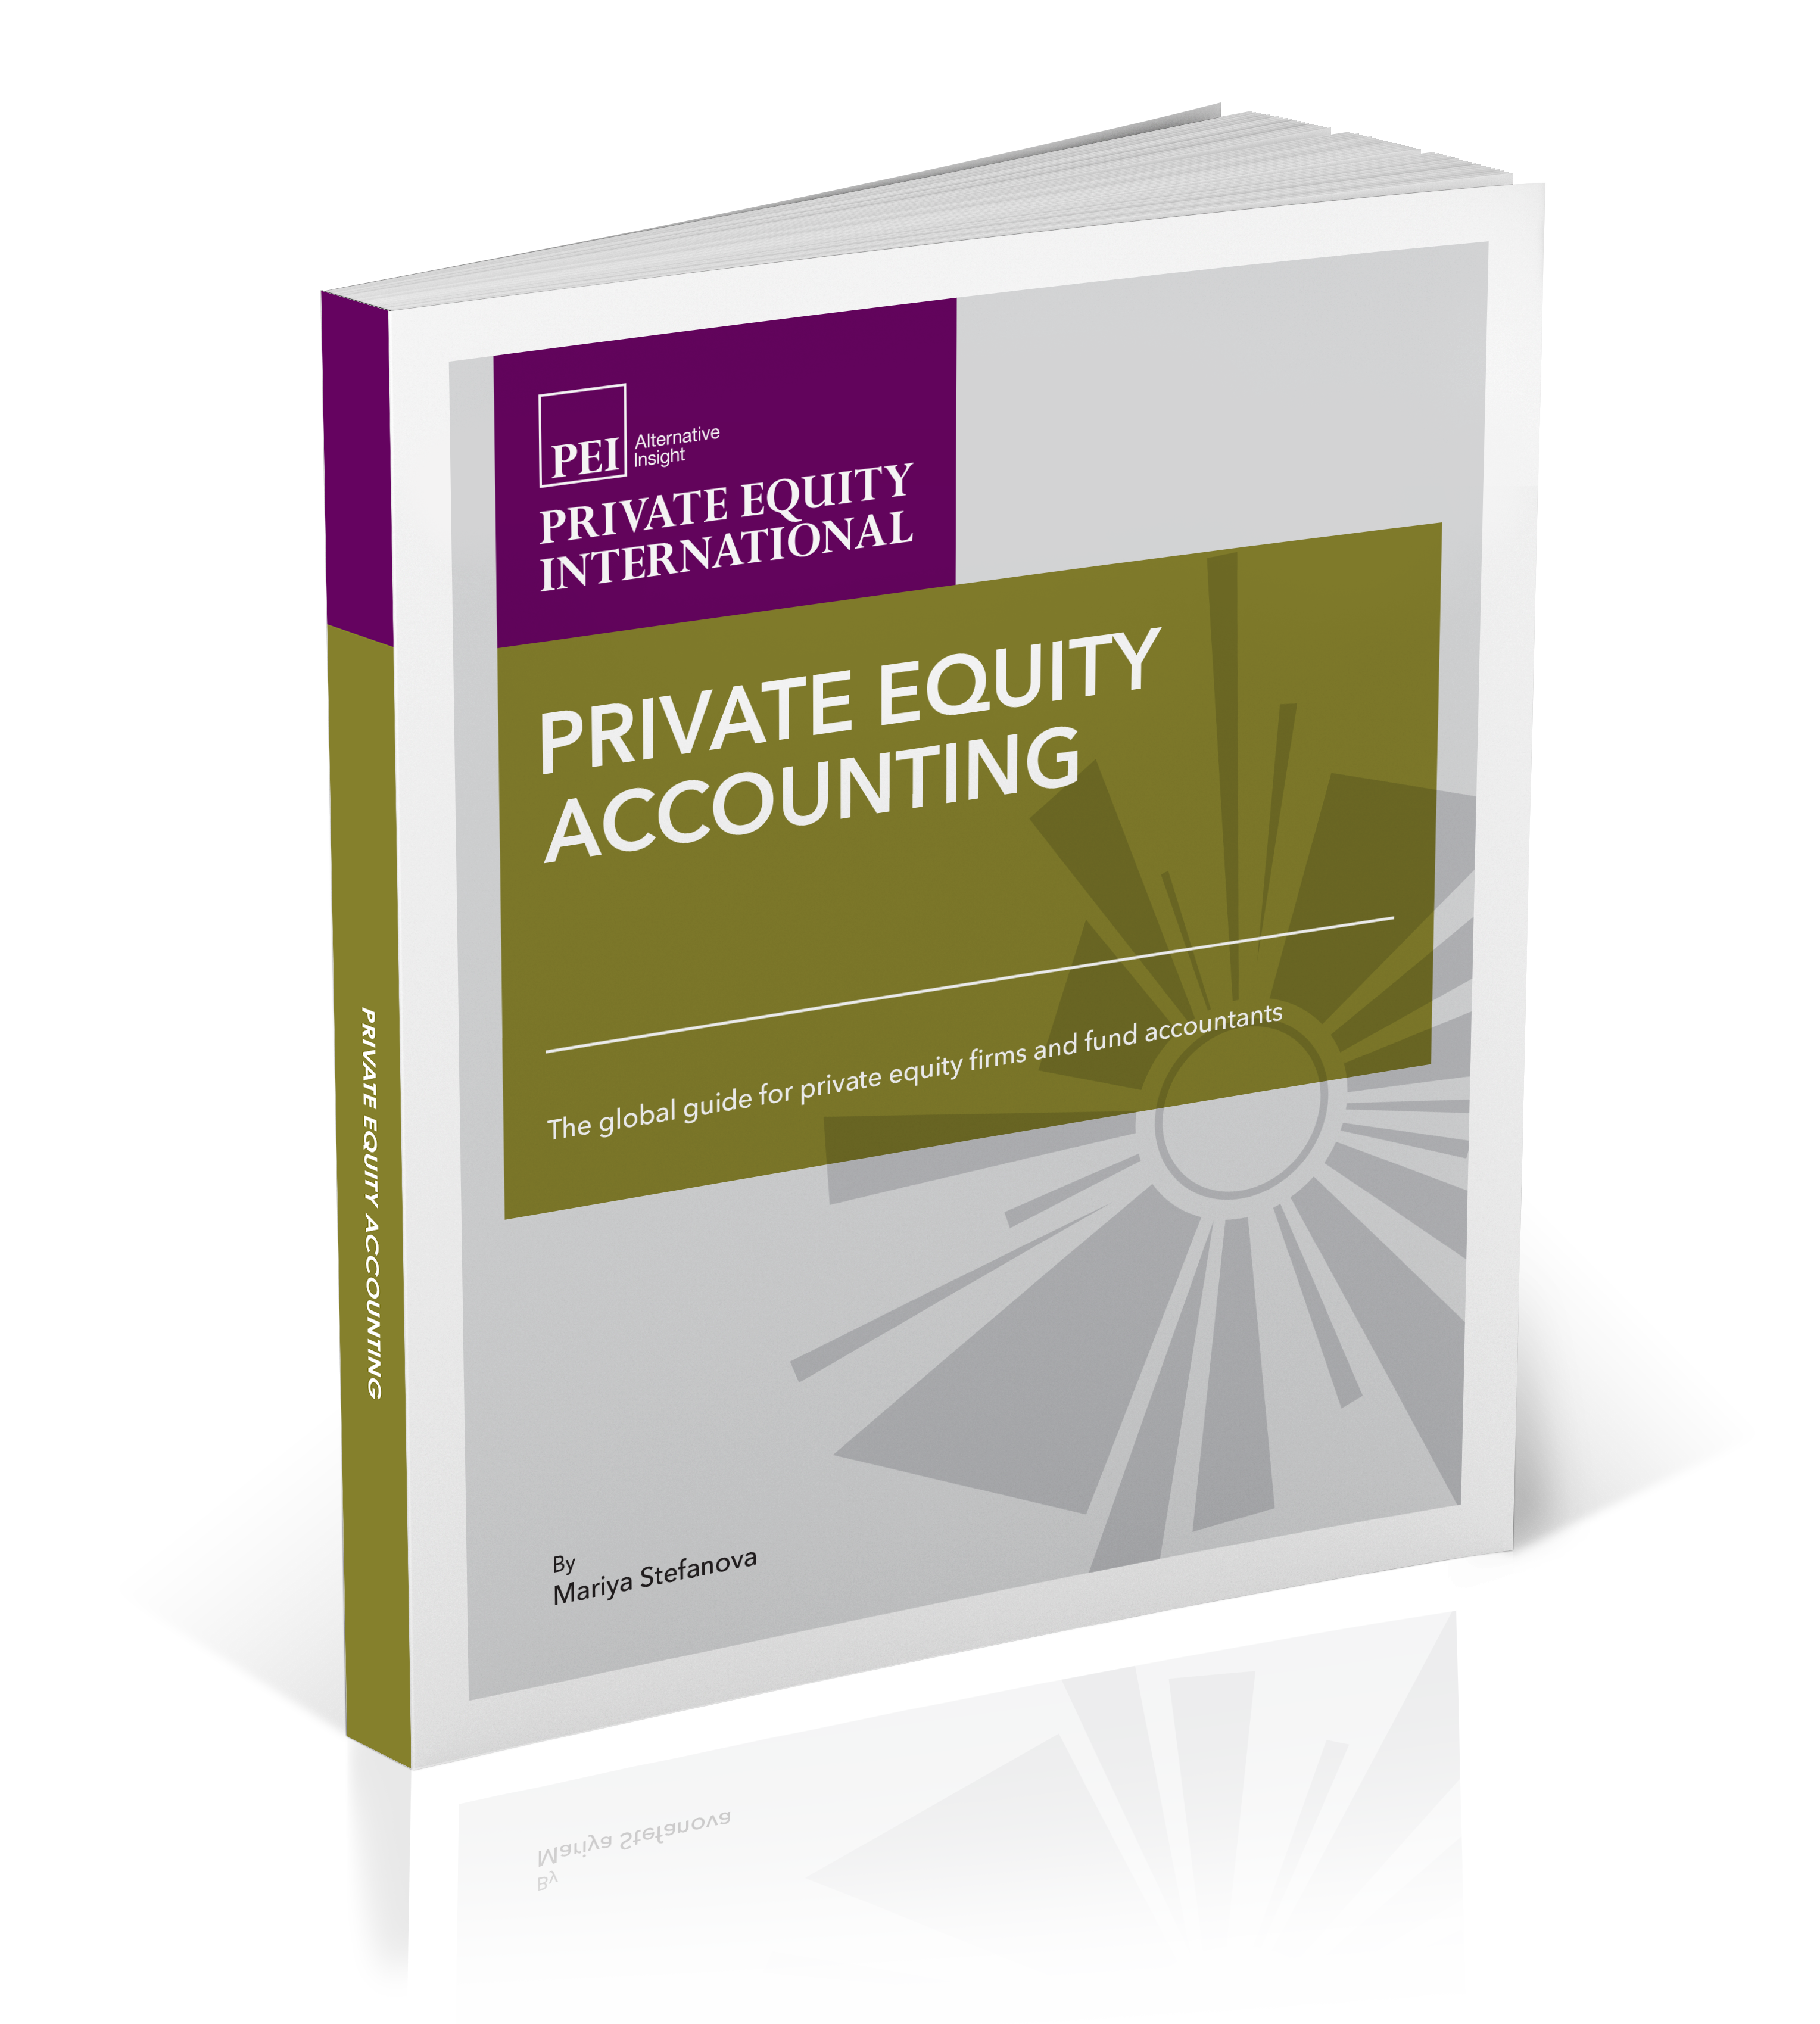 Private Equity Accounting - Private Equity International